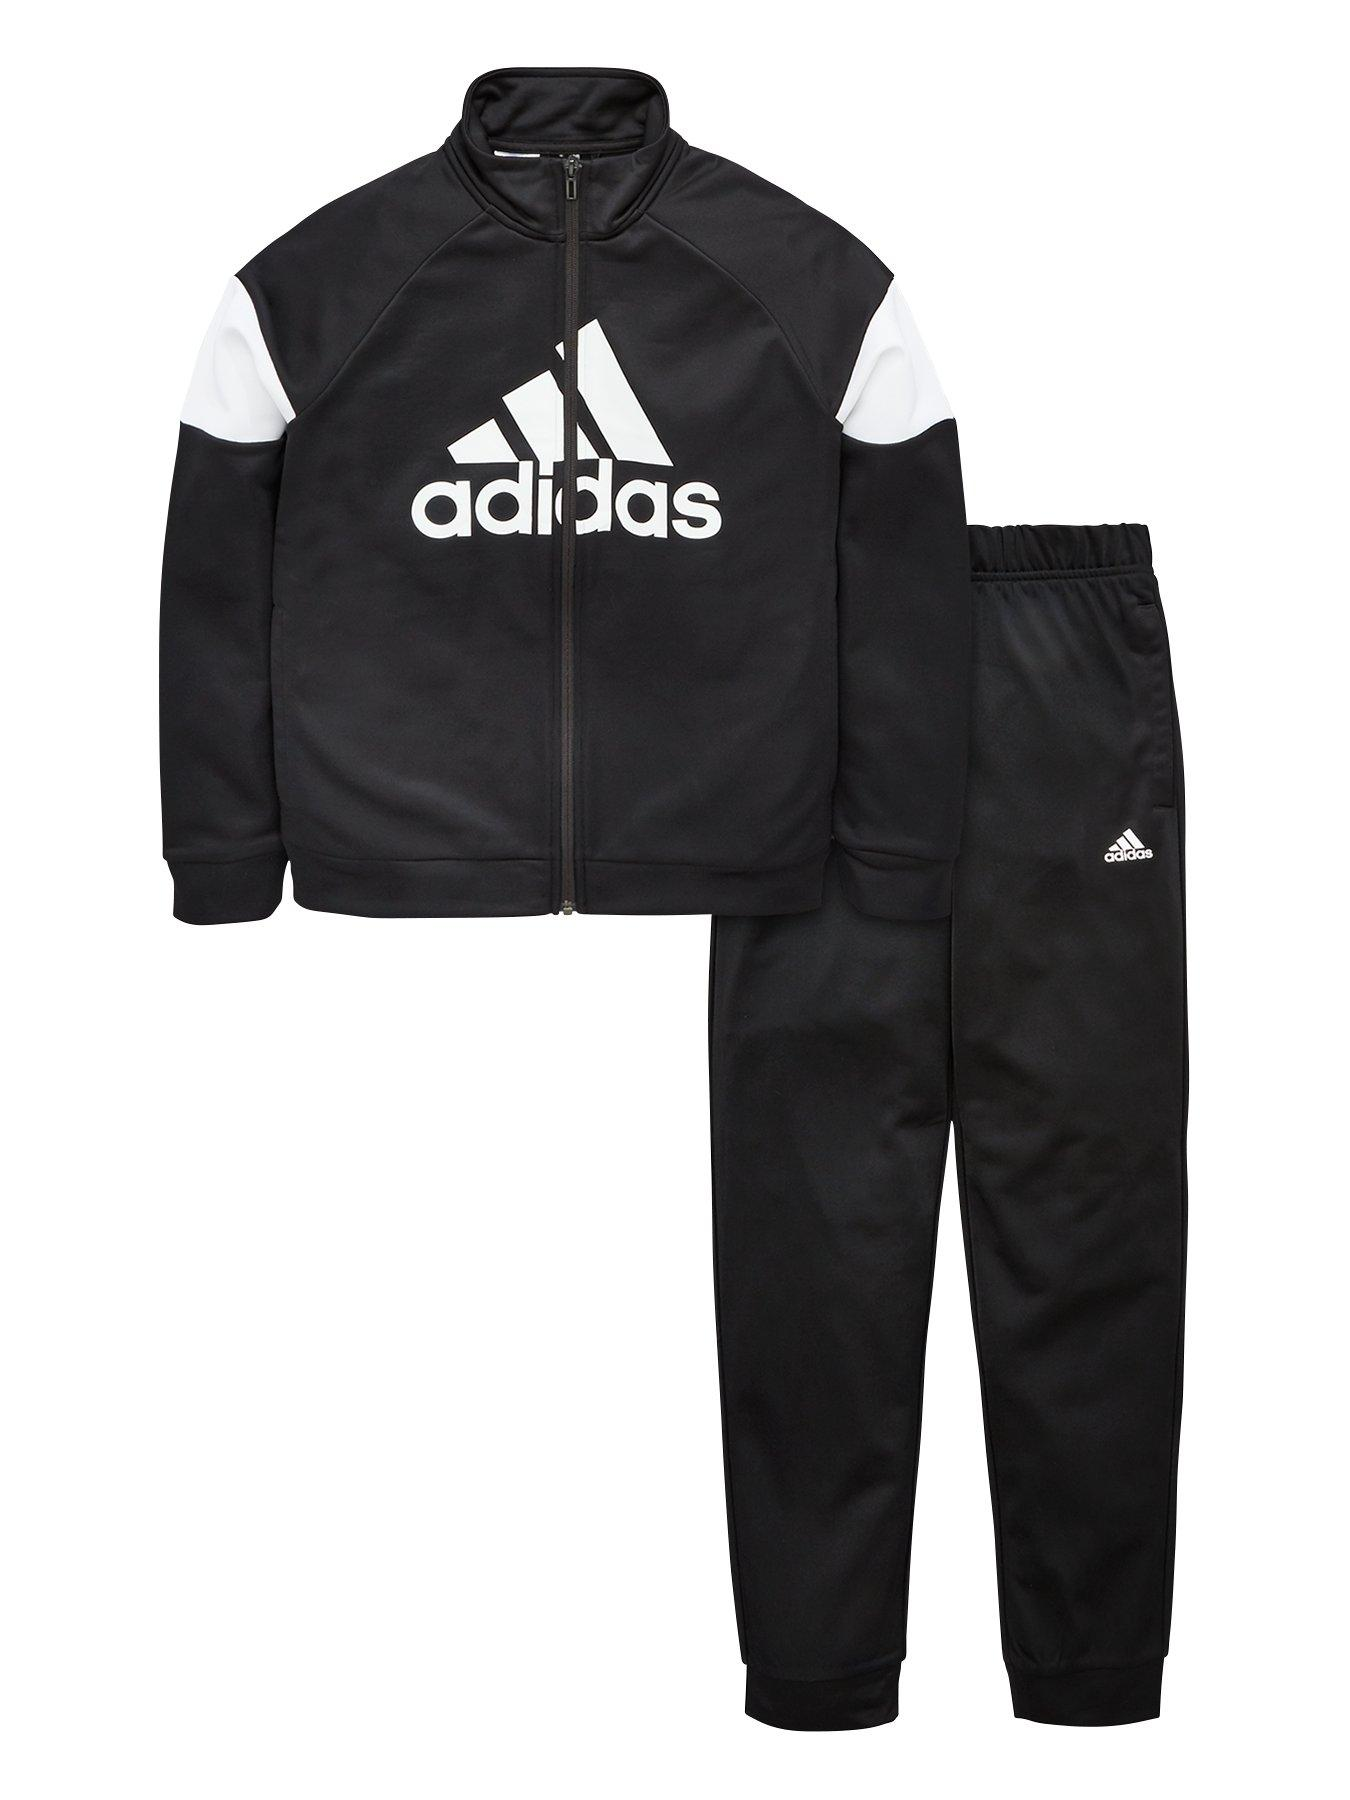 Kids Tracksuits | Childrens Tracksuits